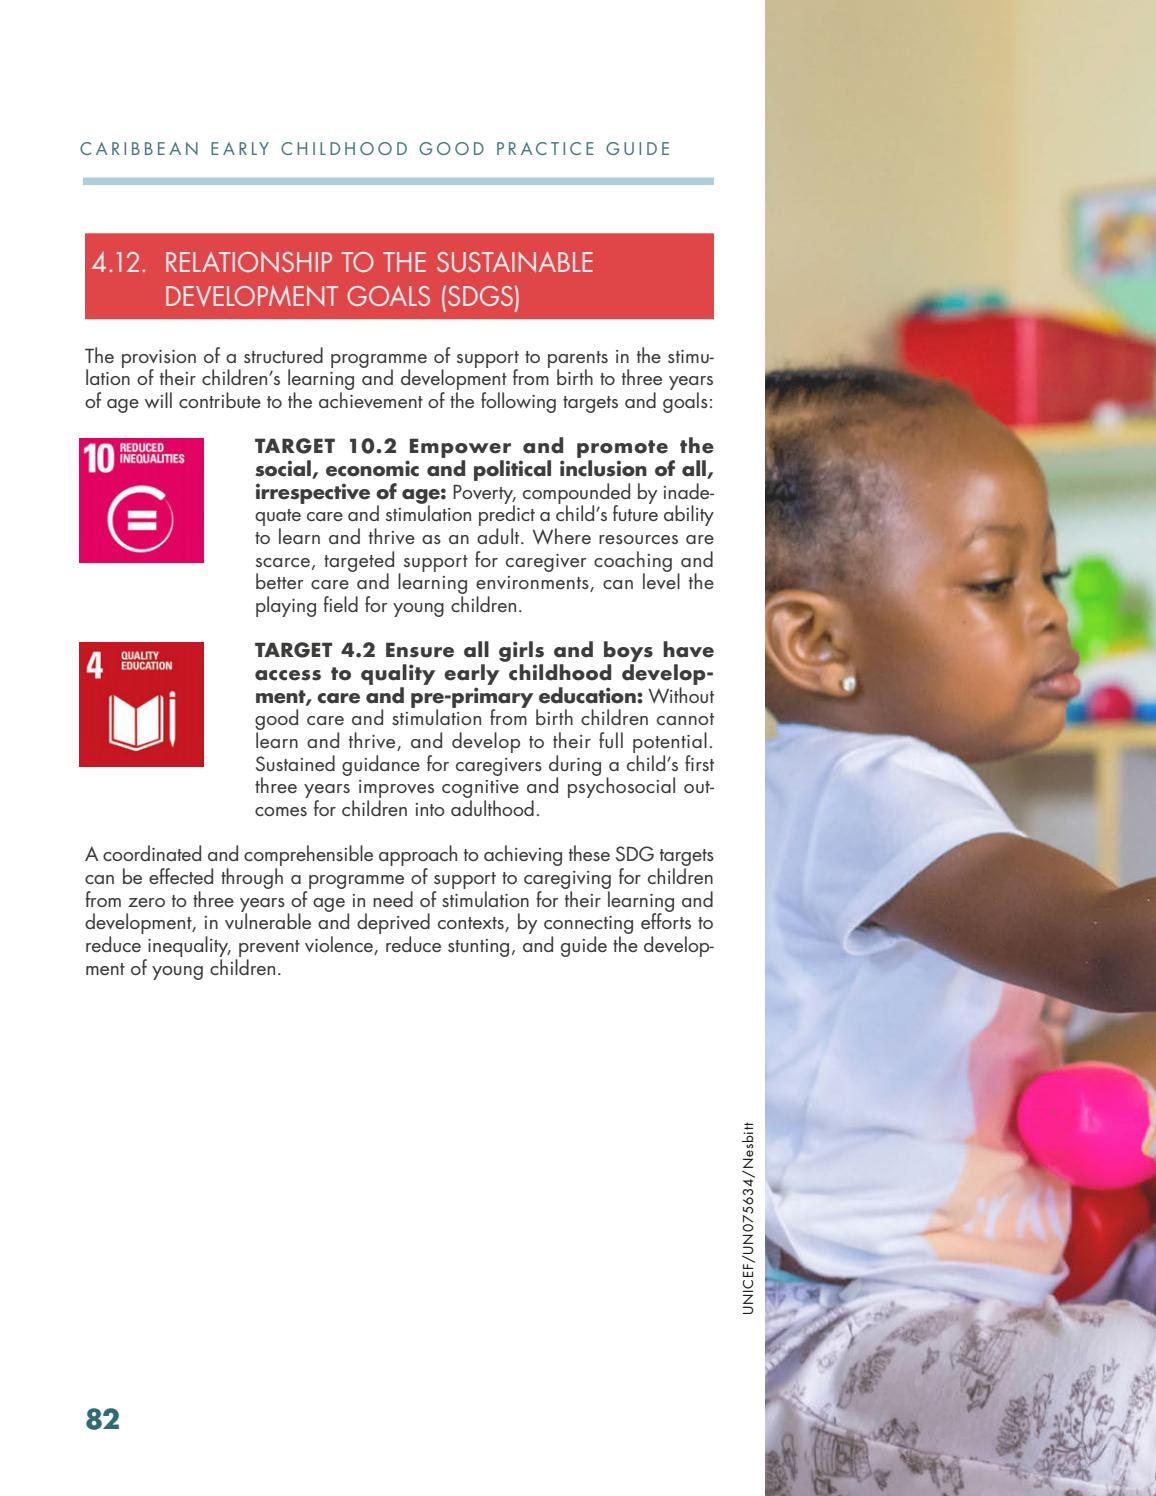 Caribbean Early Childhood Development Good Practice Guide by